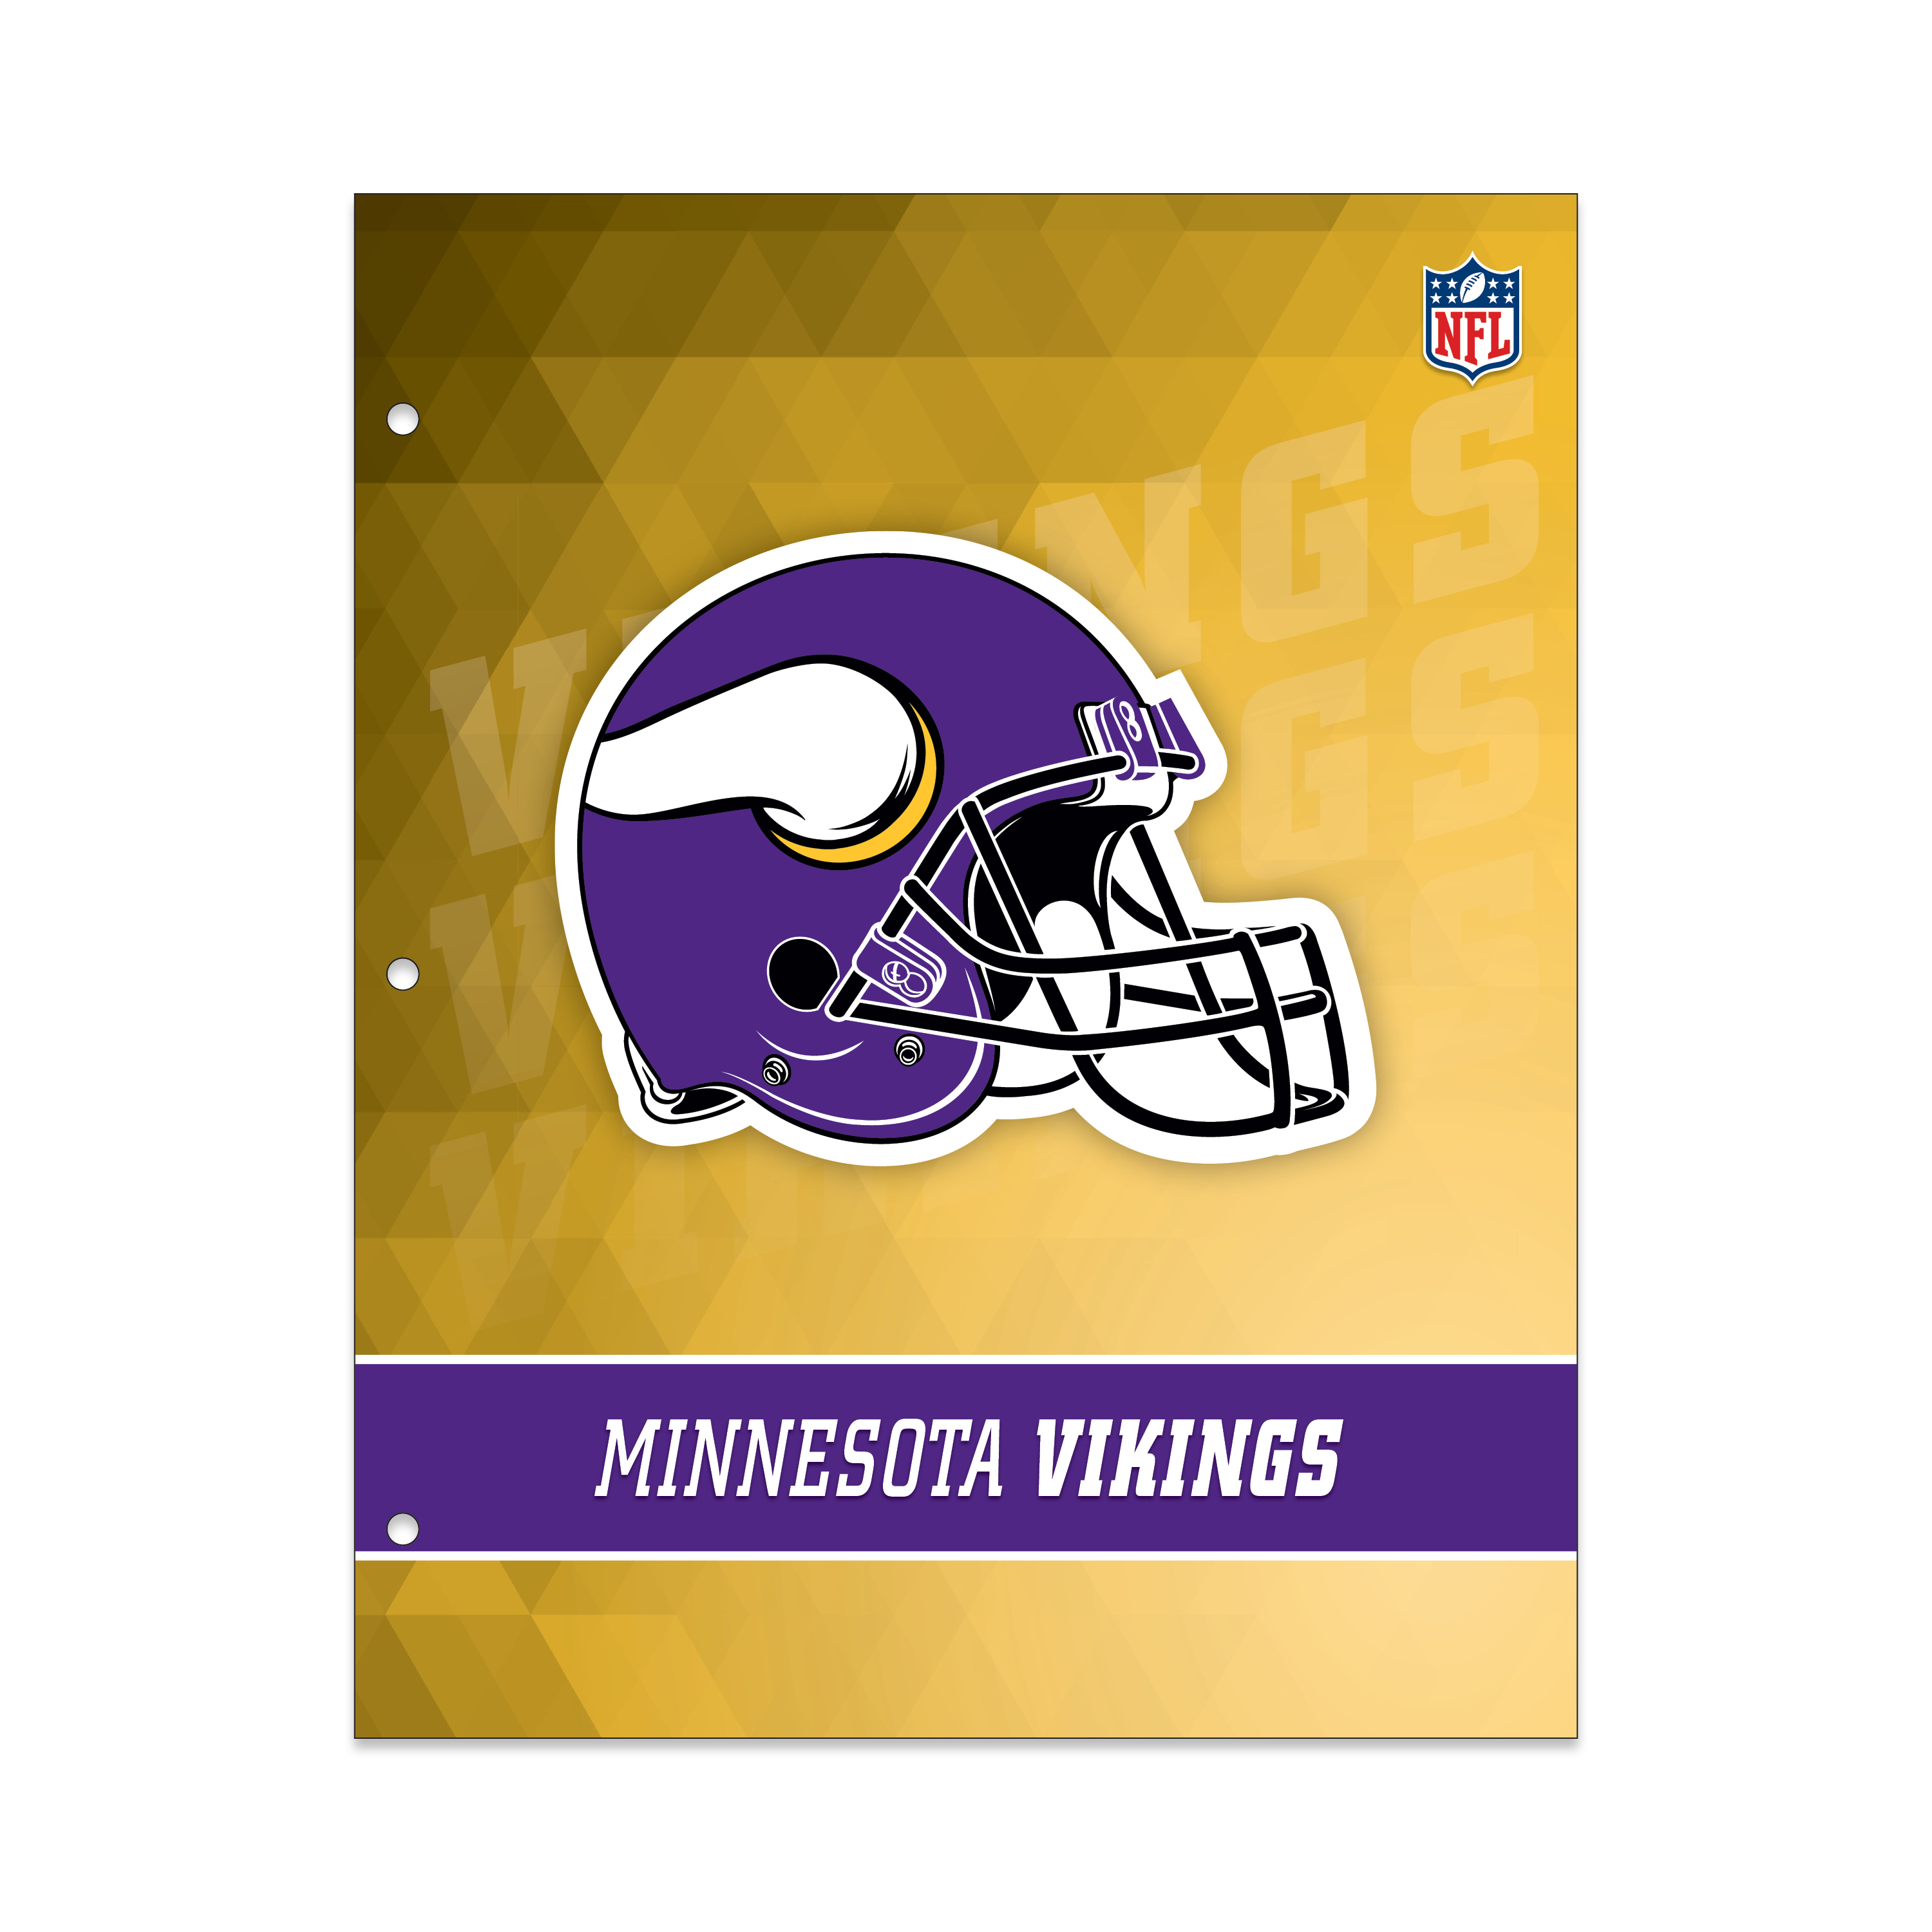 NFL Minnesota Vikings 2 Pocket Portfolio, Three Hole Punched, Fits Letter Size